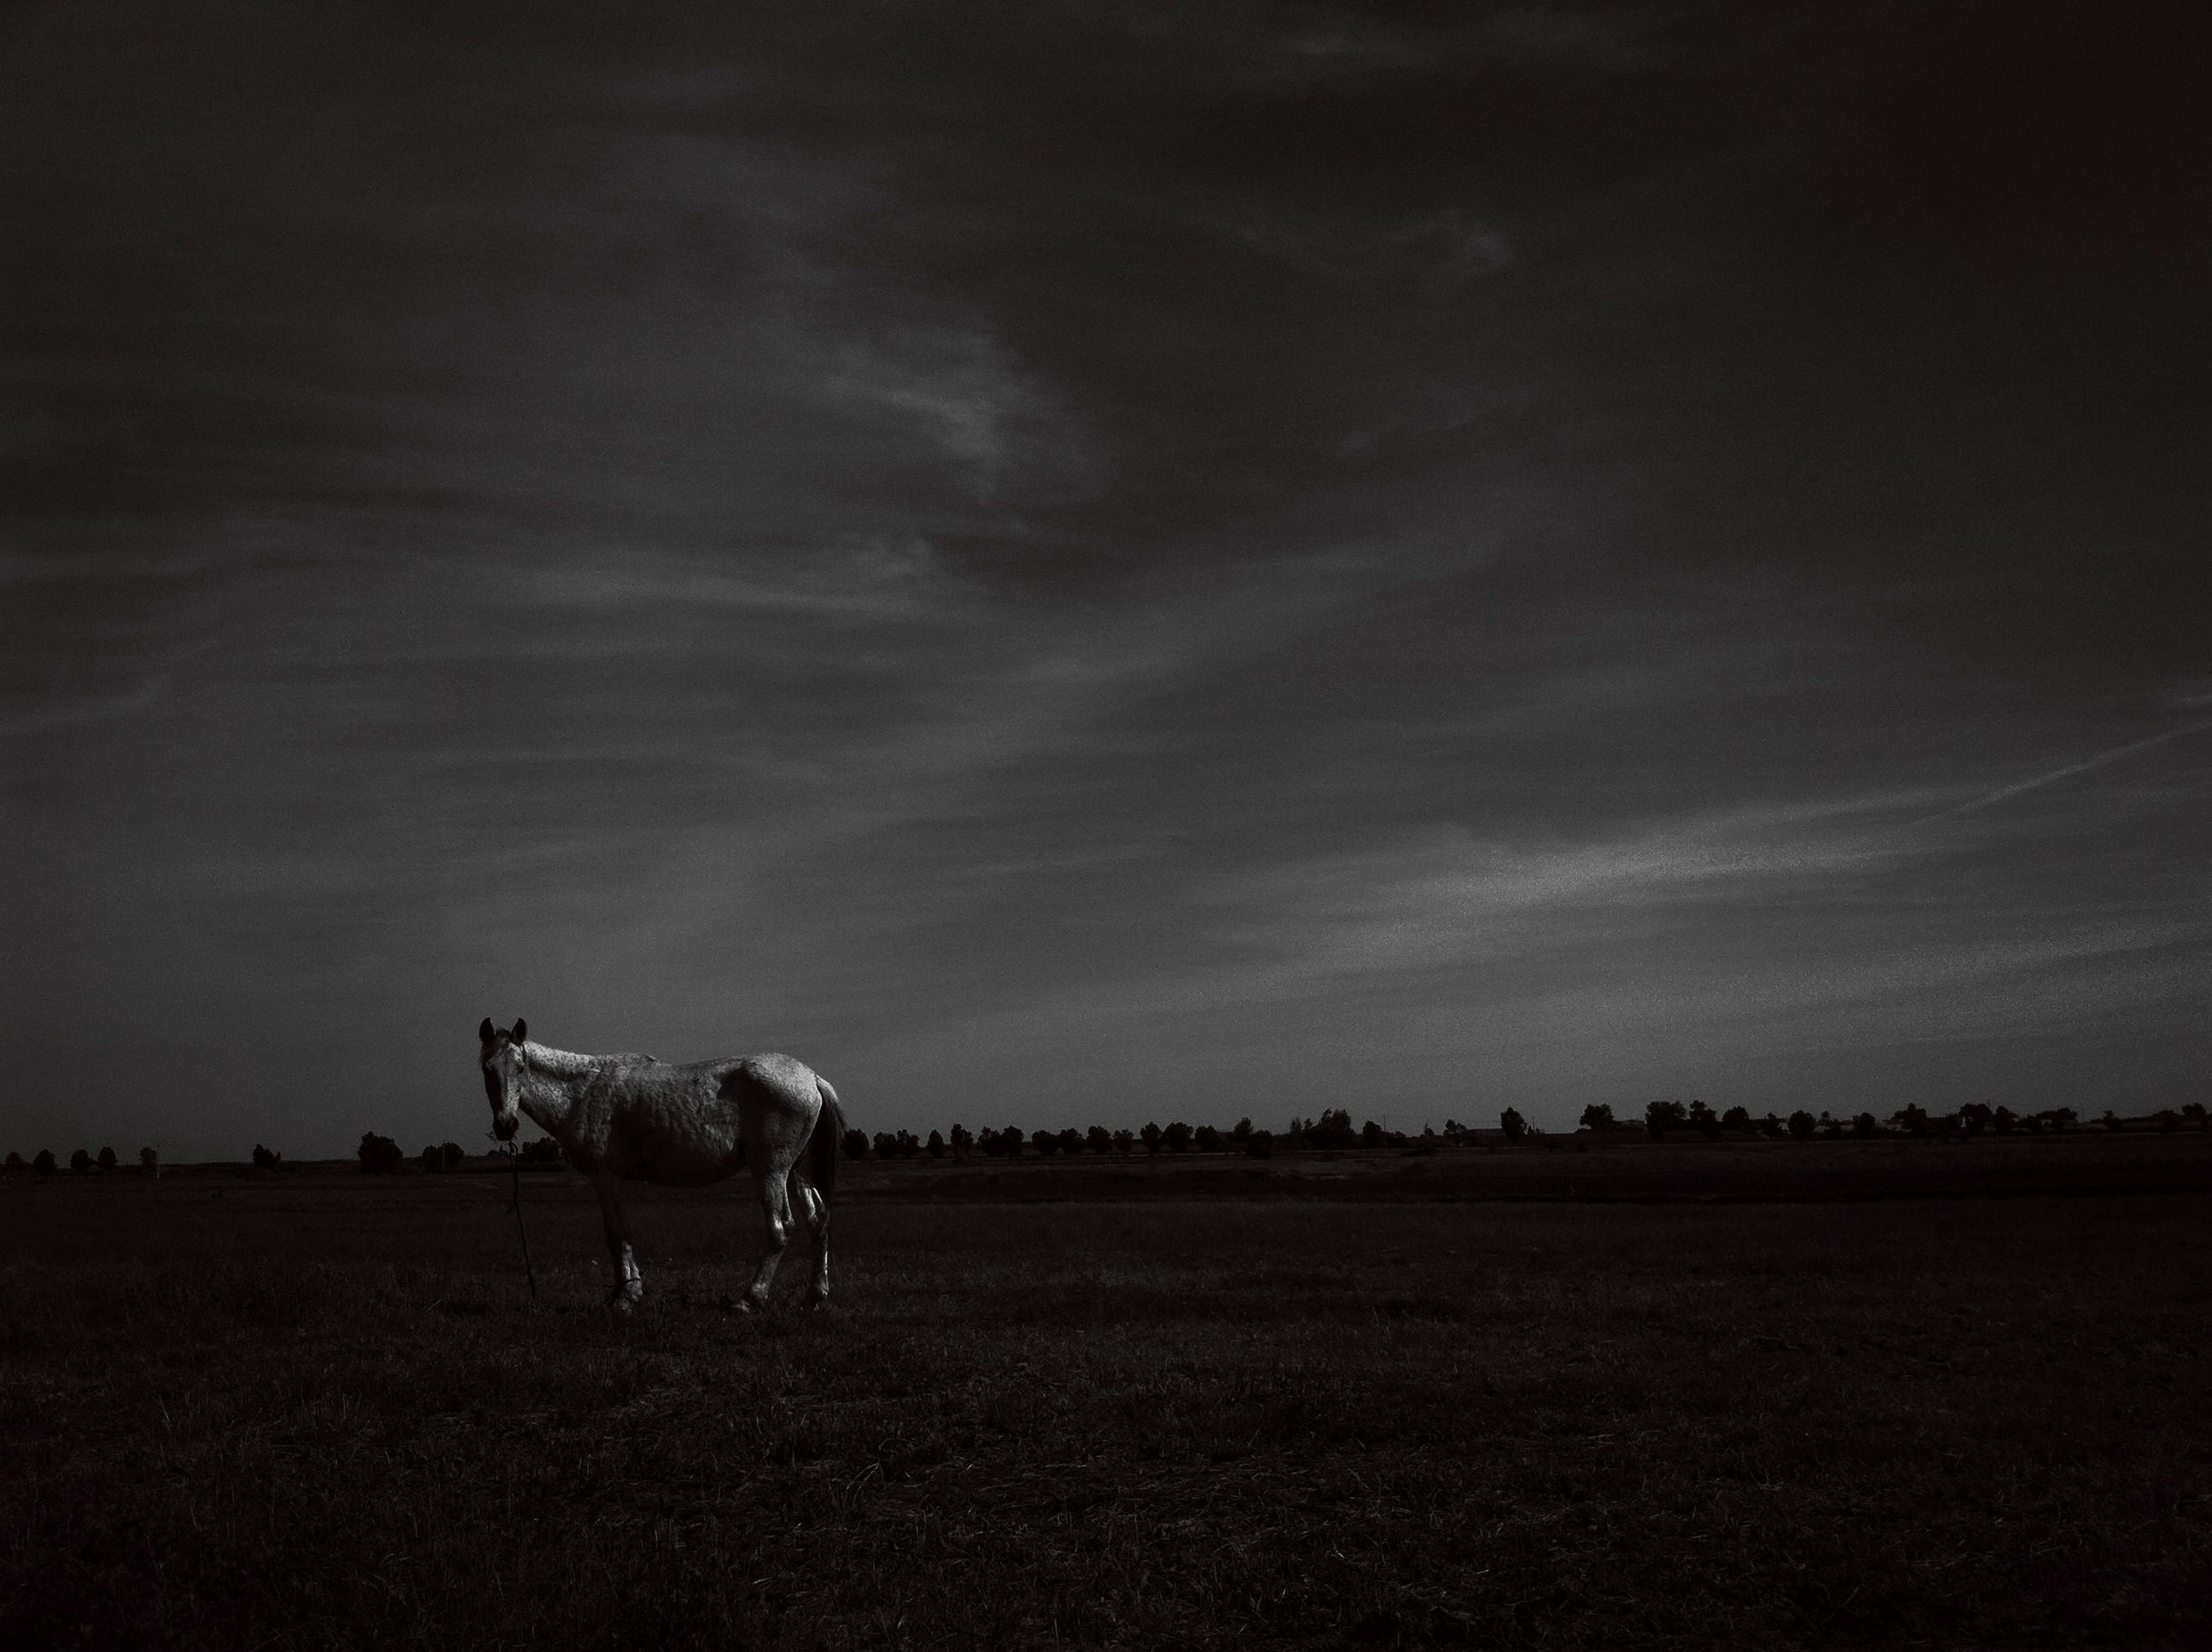 animal themes, domestic animals, mammal, one animal, sky, field, horse, landscape, livestock, full length, pets, cloud - sky, two animals, nature, dog, tranquility, side view, standing, silhouette, tranquil scene